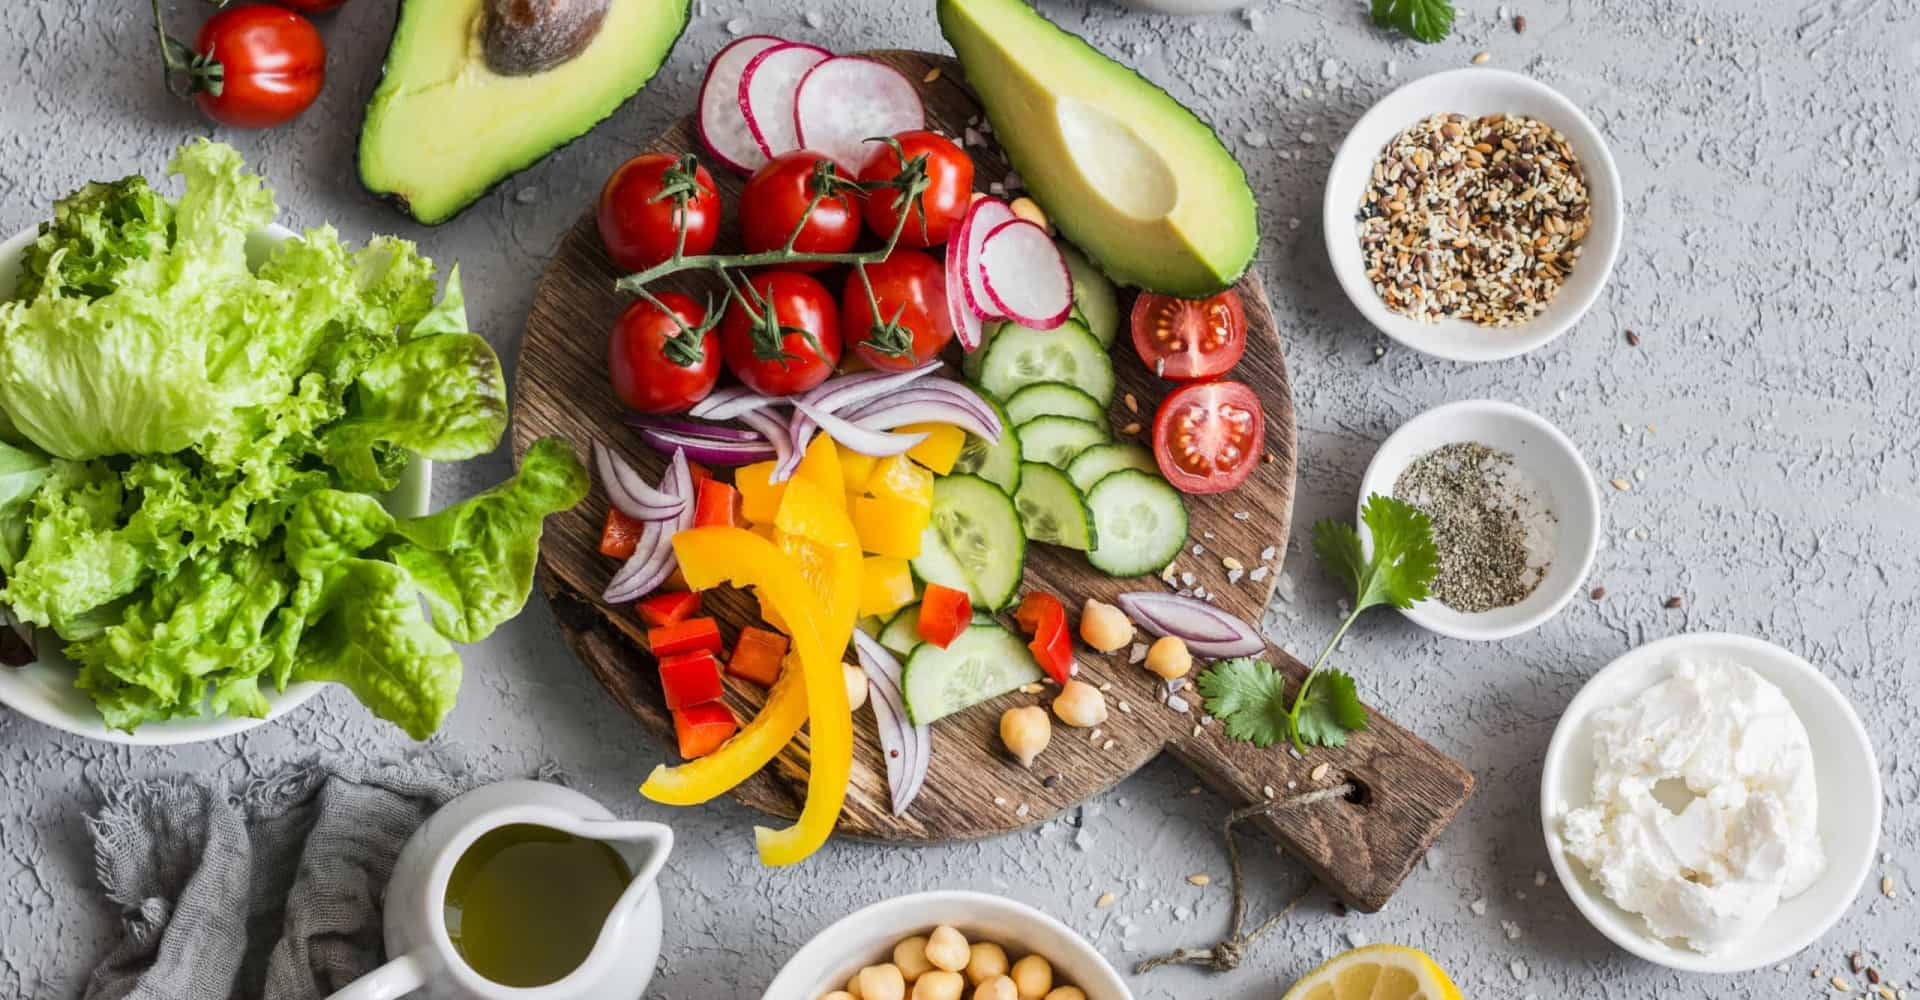 This simple diet is rated the healthiest in 2020